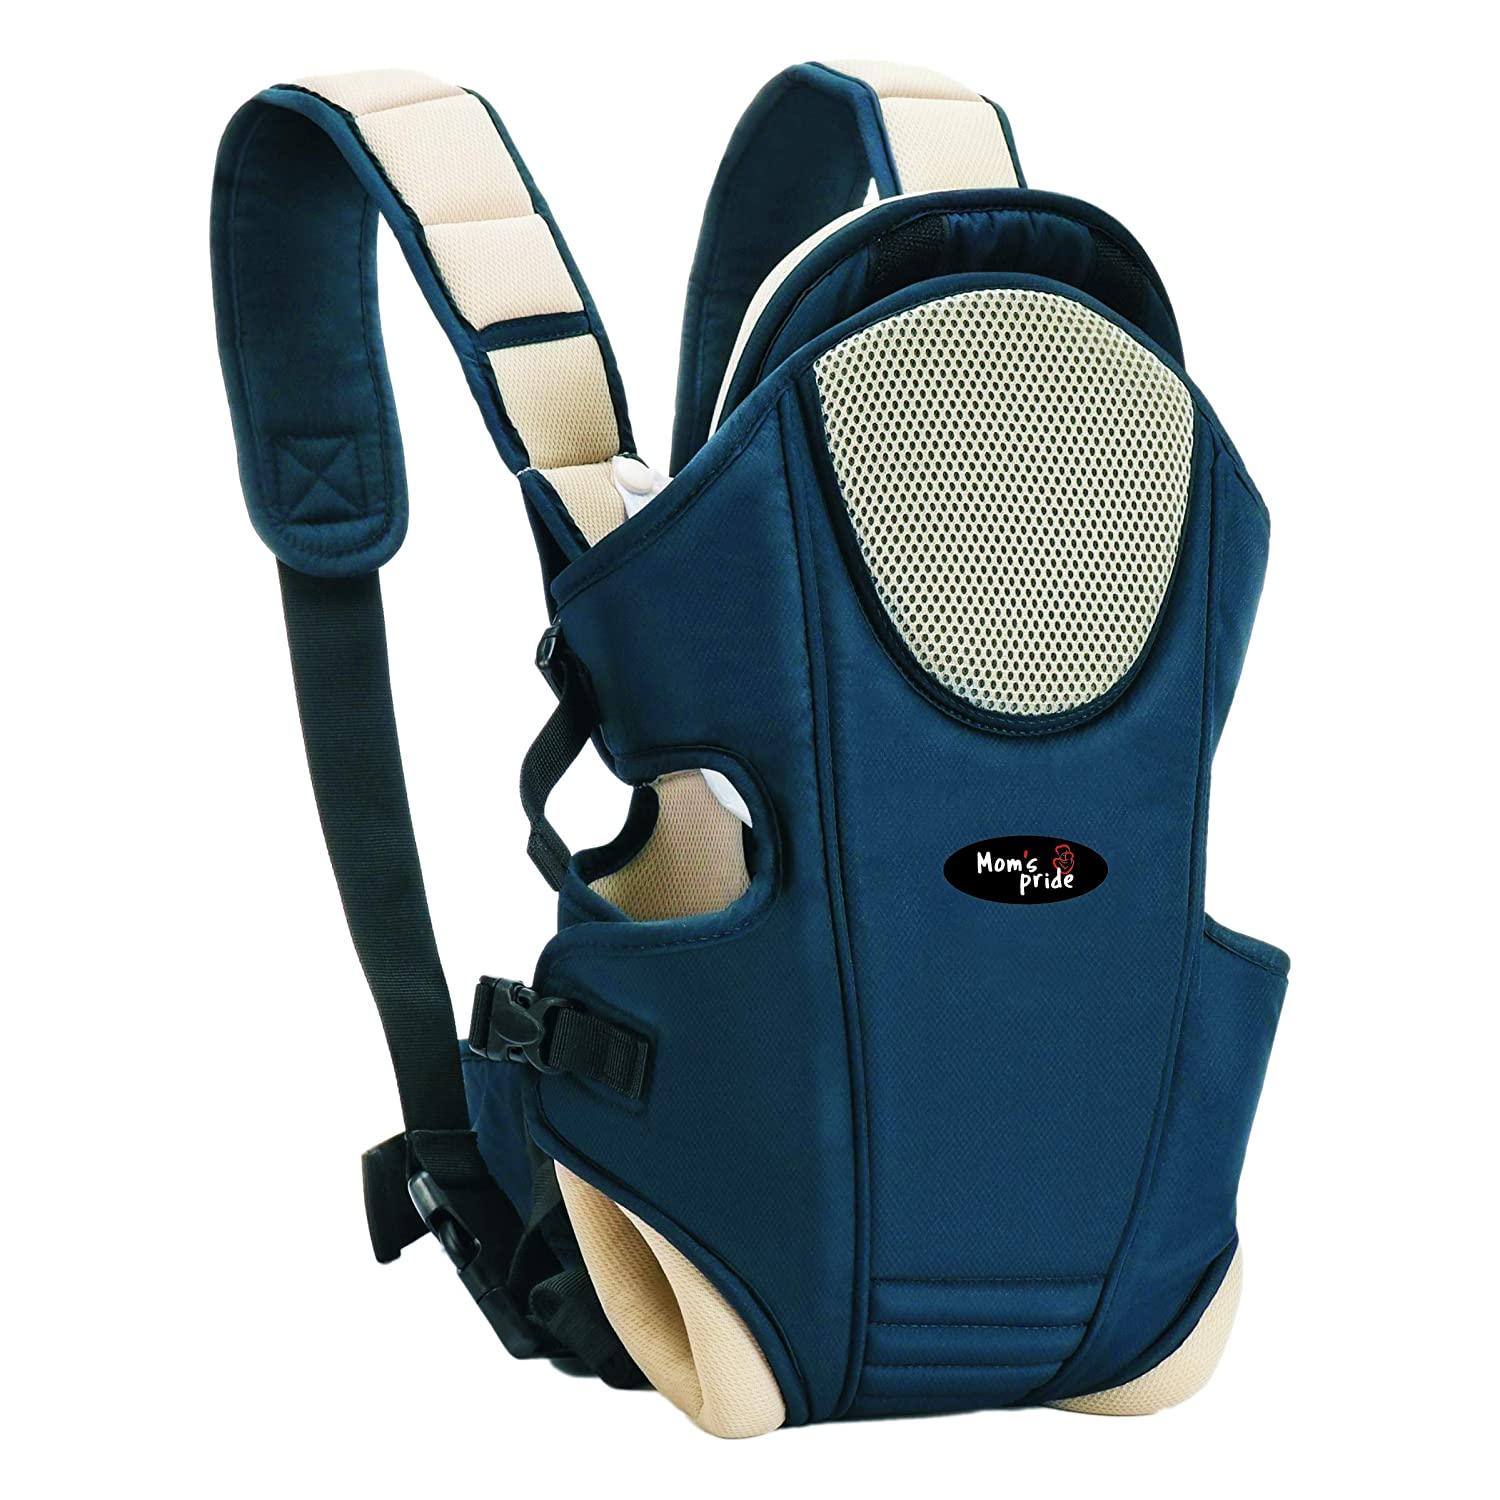 Bag for Baby Carrier Baby Holding for a Long Time 2021 India